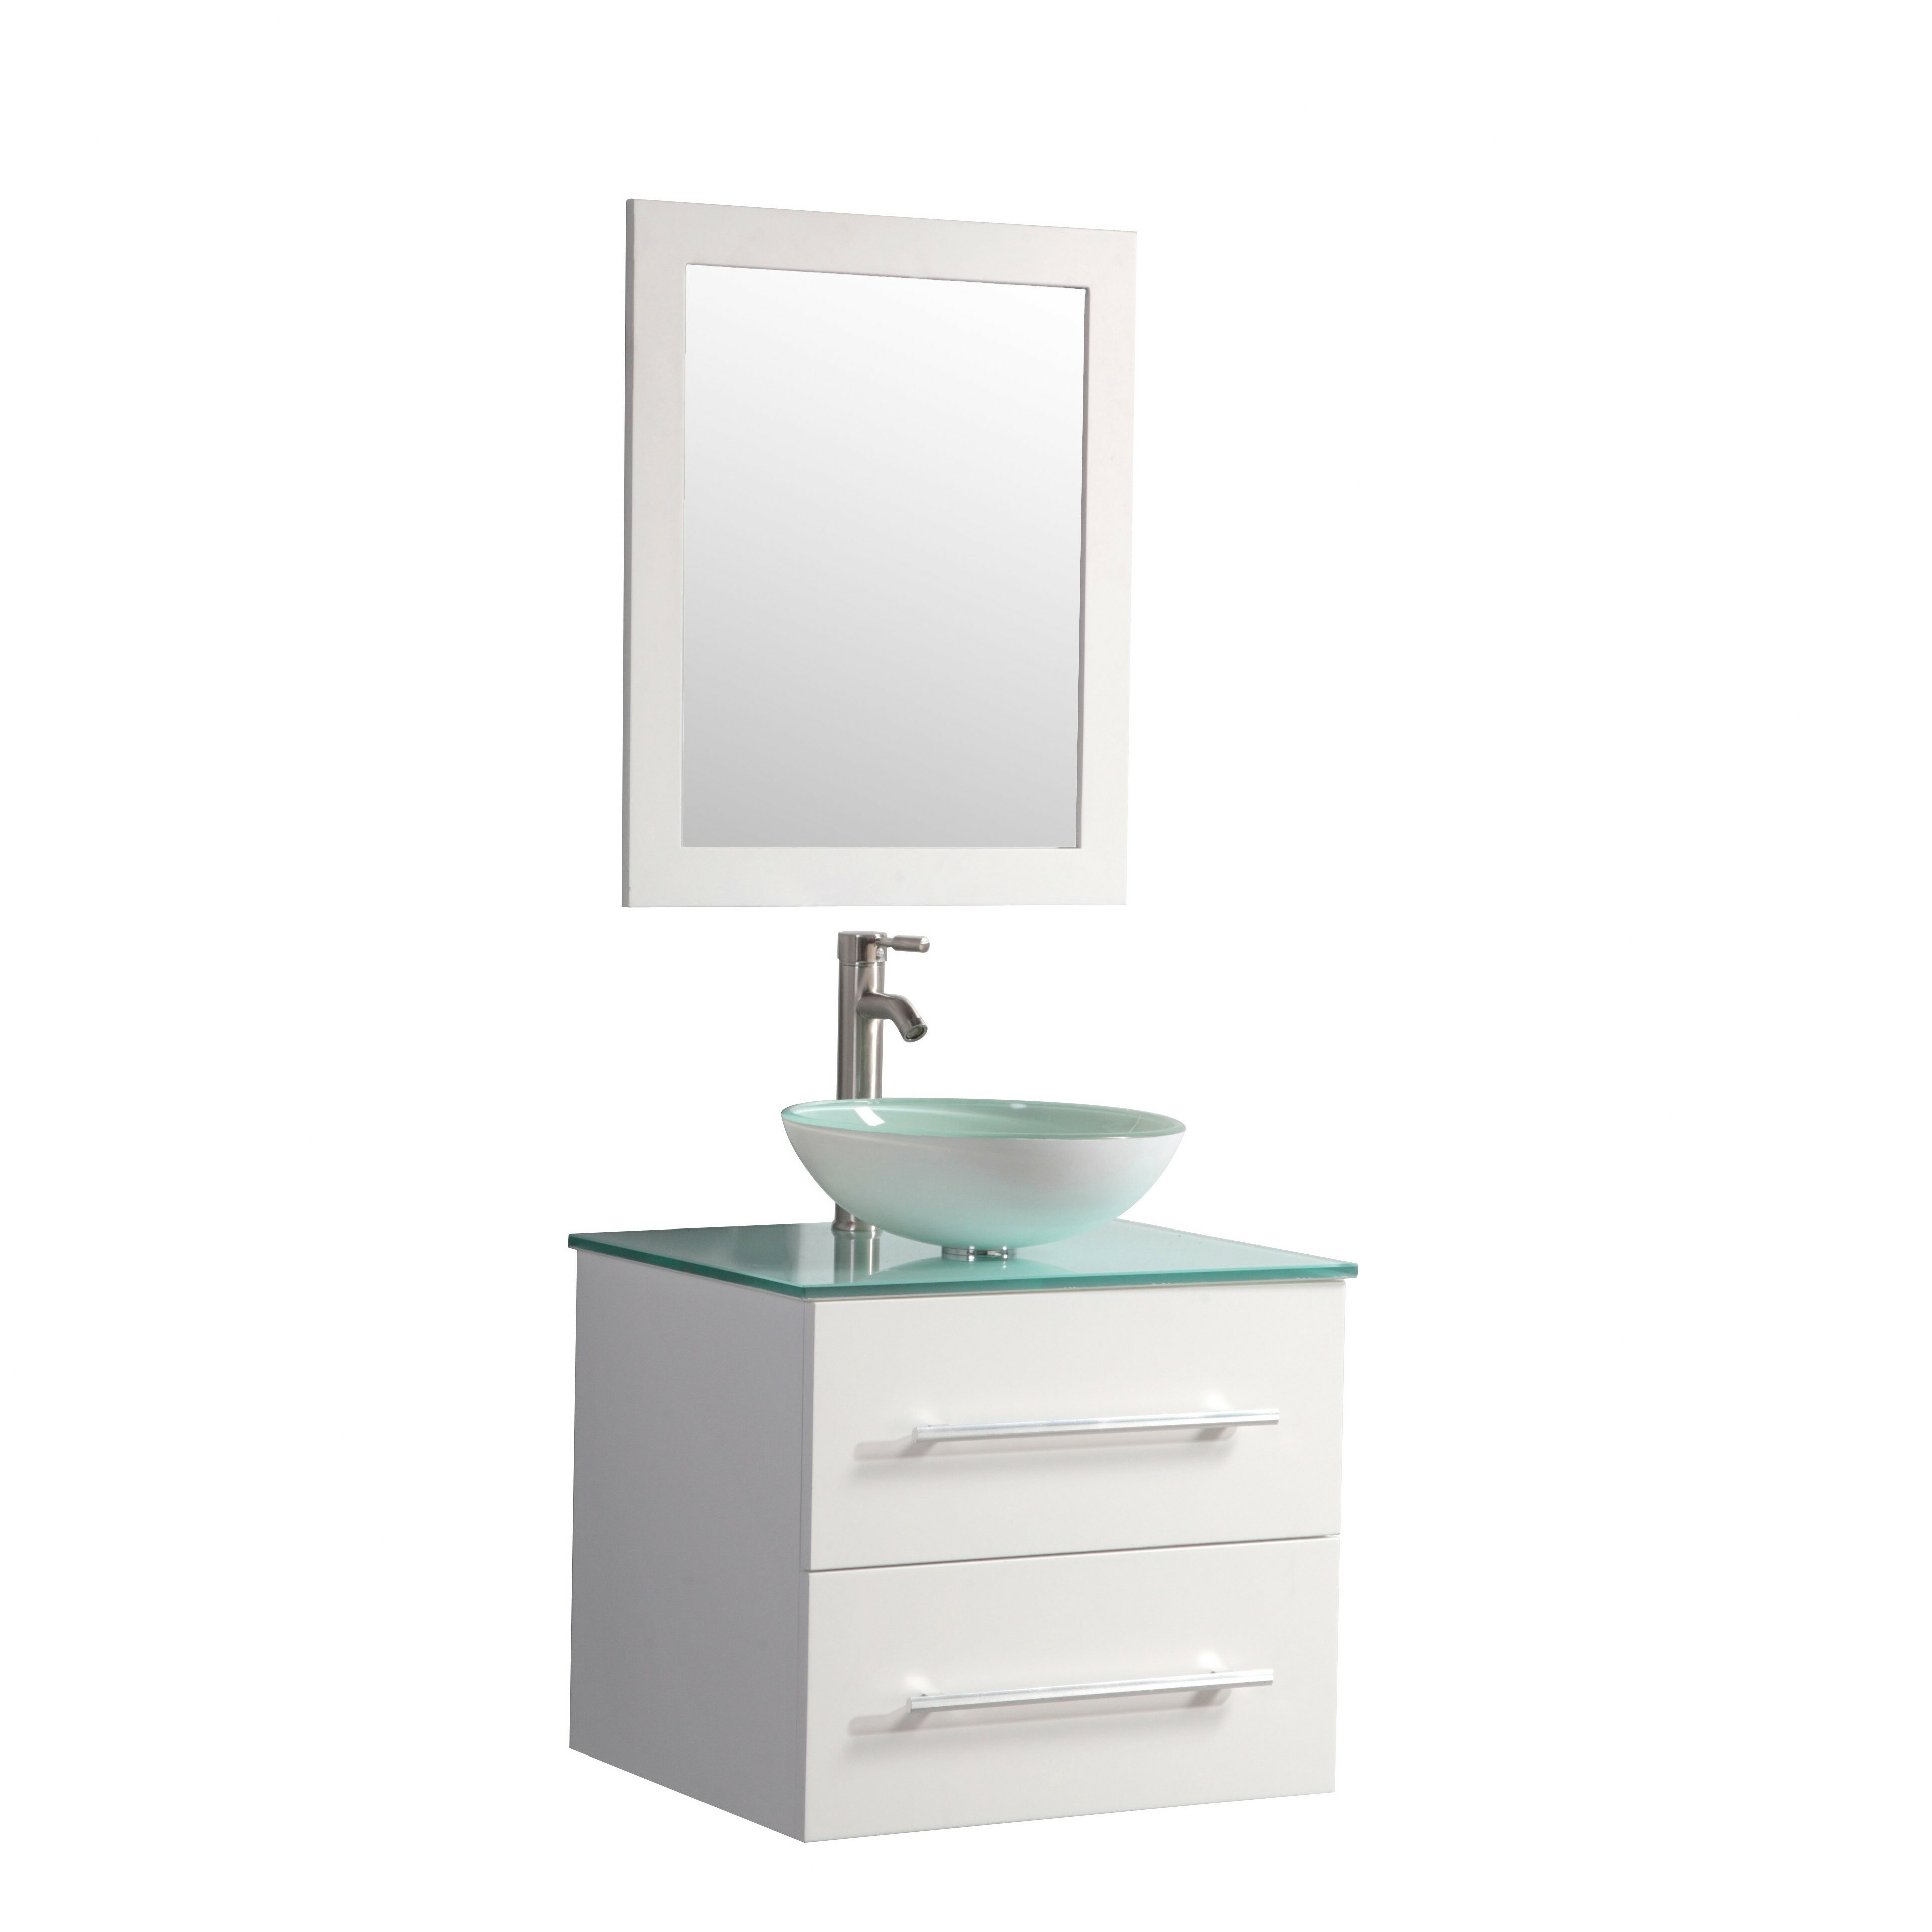 Bathroom Pottery Barn | Pottery Barn Vanity | Mirrored Bedroom Vanity